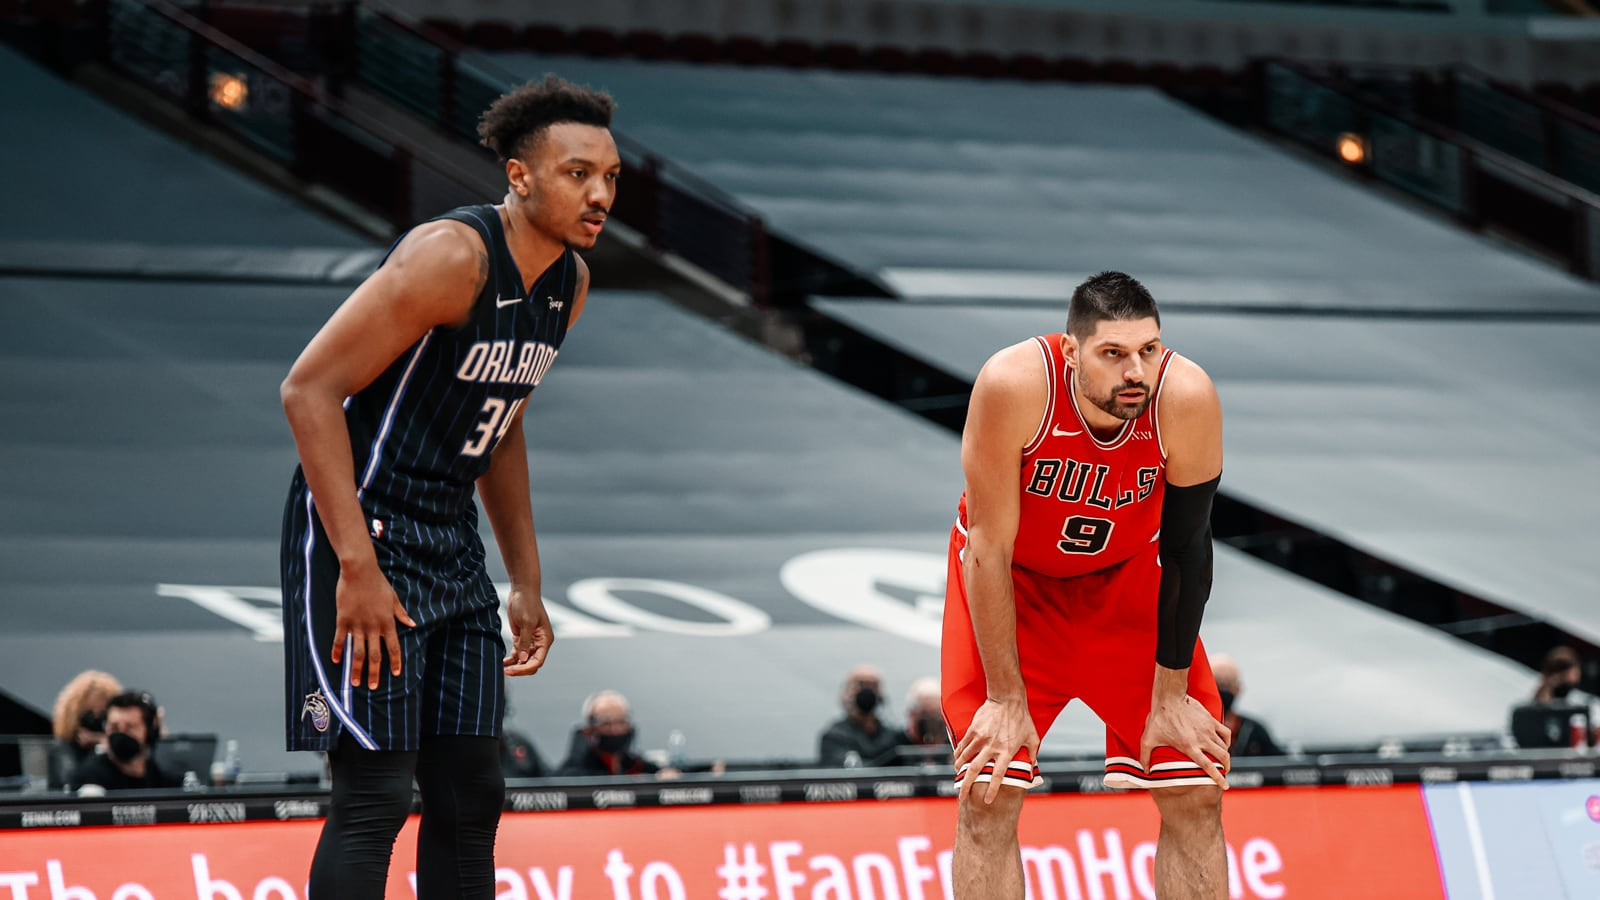 Vucevic and Carter Jr. duel in first matchup since trade Bulls fall to Magic